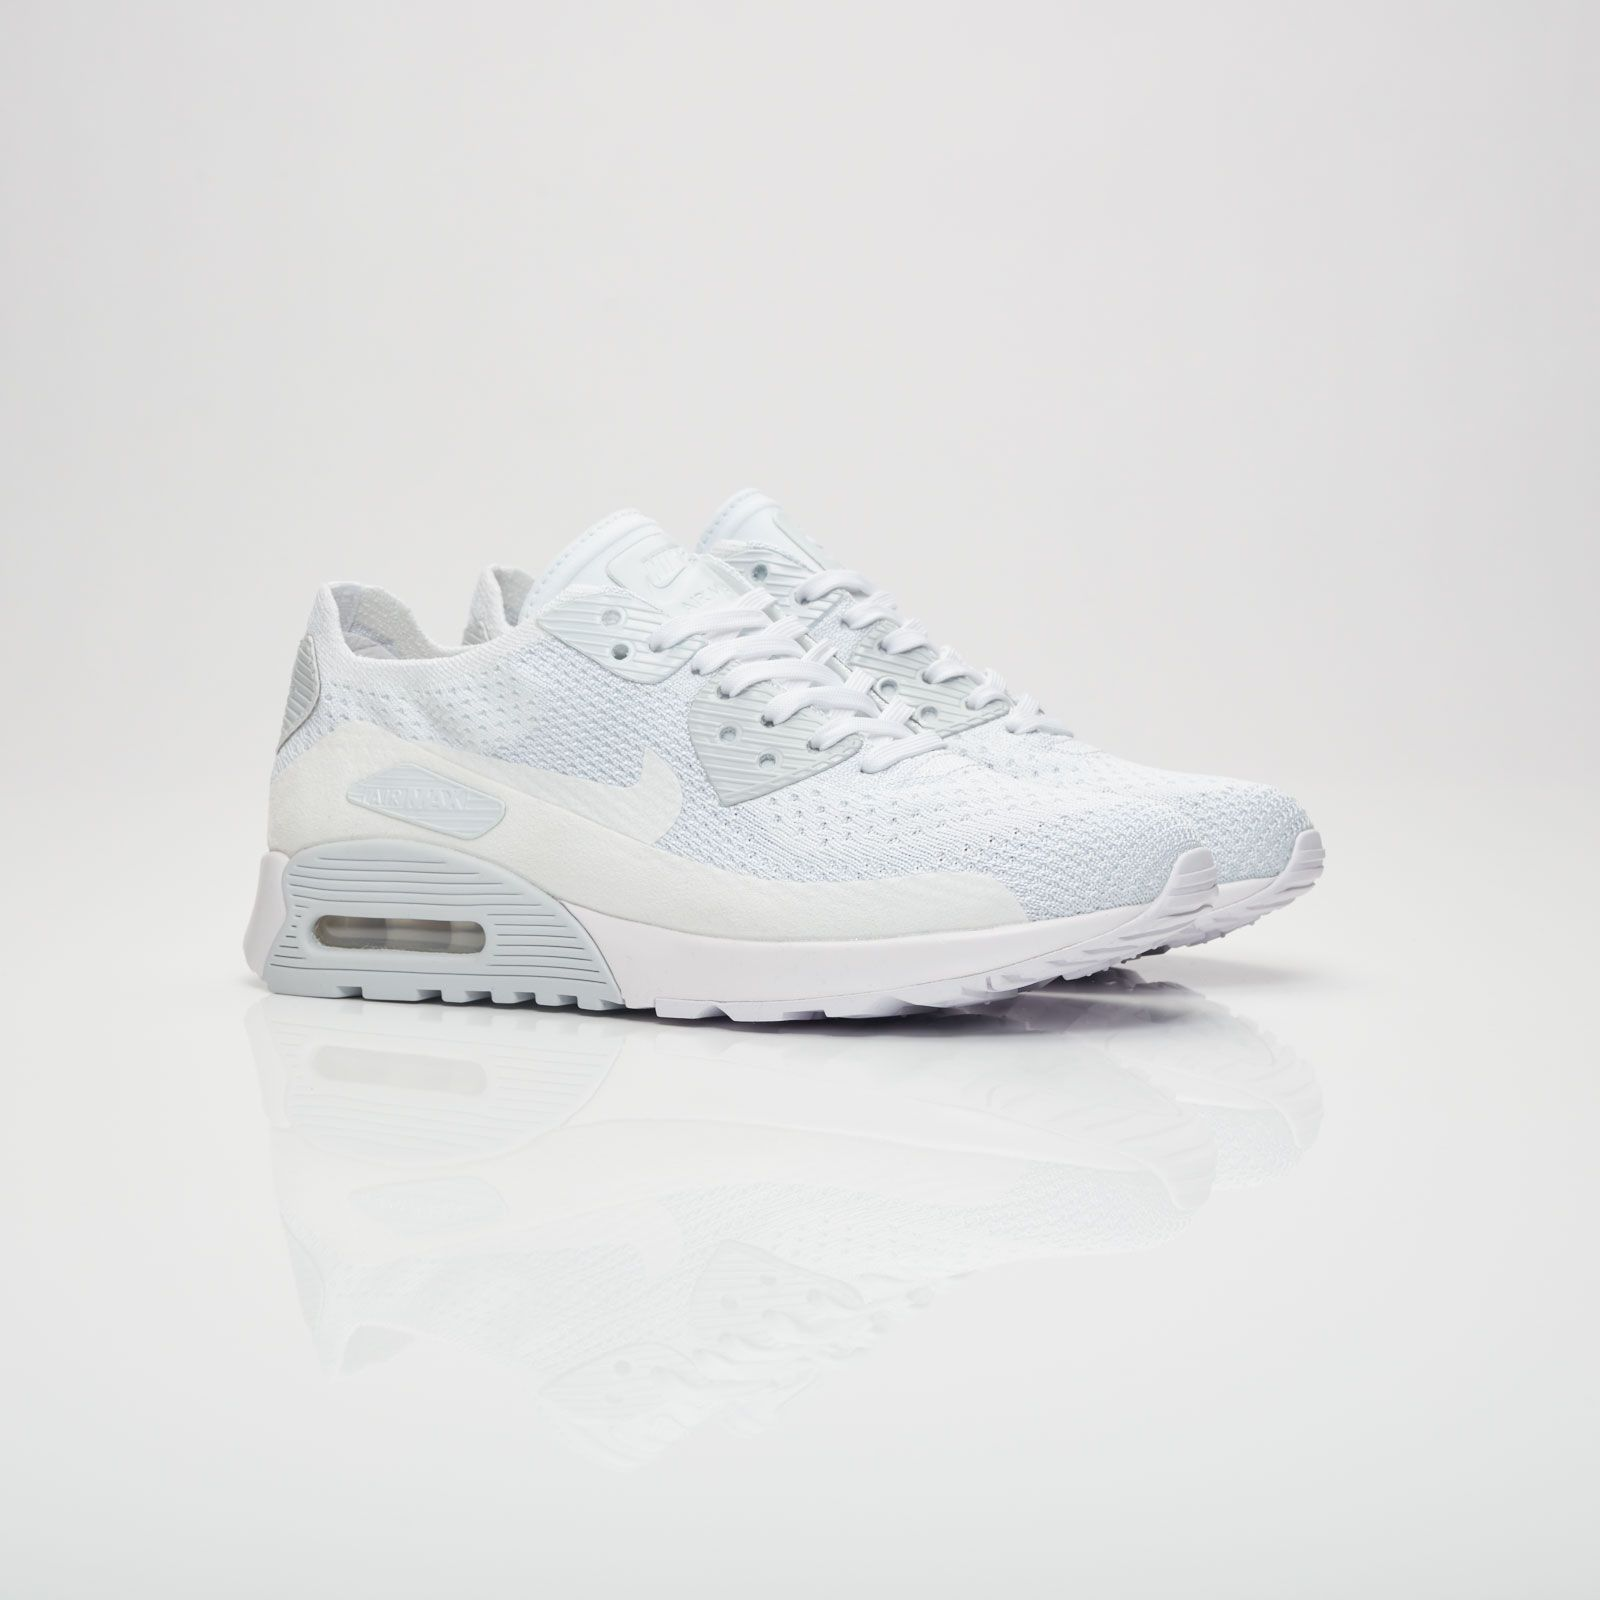 new styles daafd 9cc85 7d7e5 82e0d  coupon code for nike sportswear wmns air max 90 ultra 2.0  flyknit 6be7d 81a40